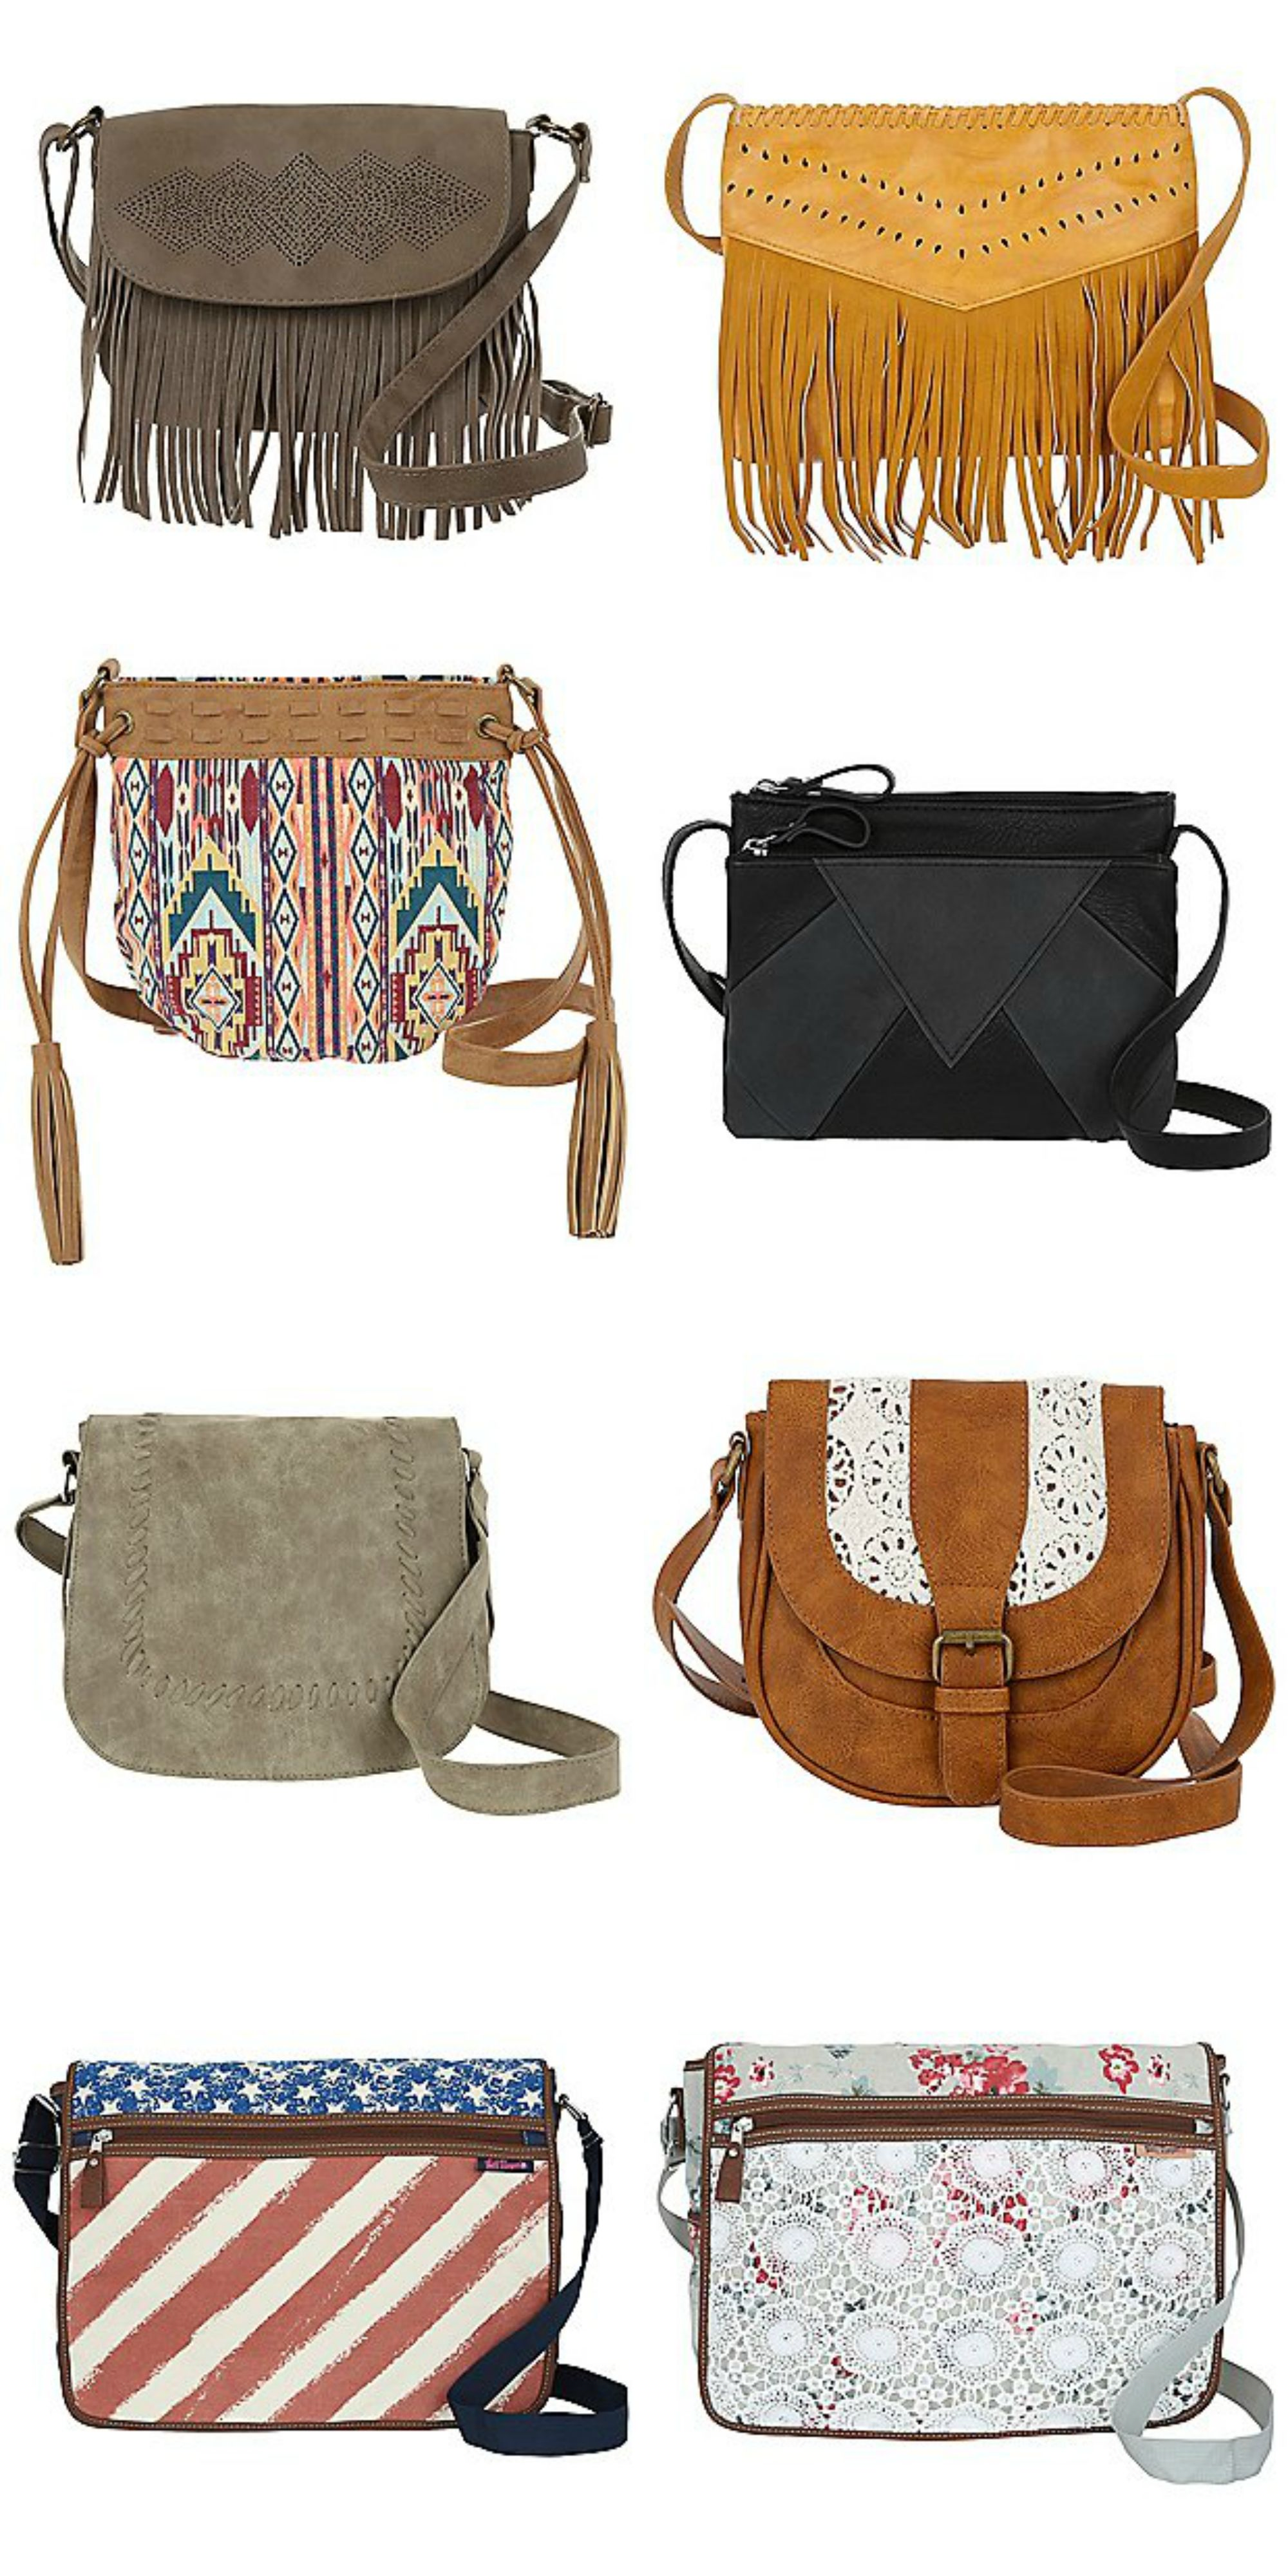 Shop crossbody bags and crossbodies at Burkes Outlet for big savings on  brands you love. Shop new cross body bags and across body purses to find  your new ... dc6bd90a13748